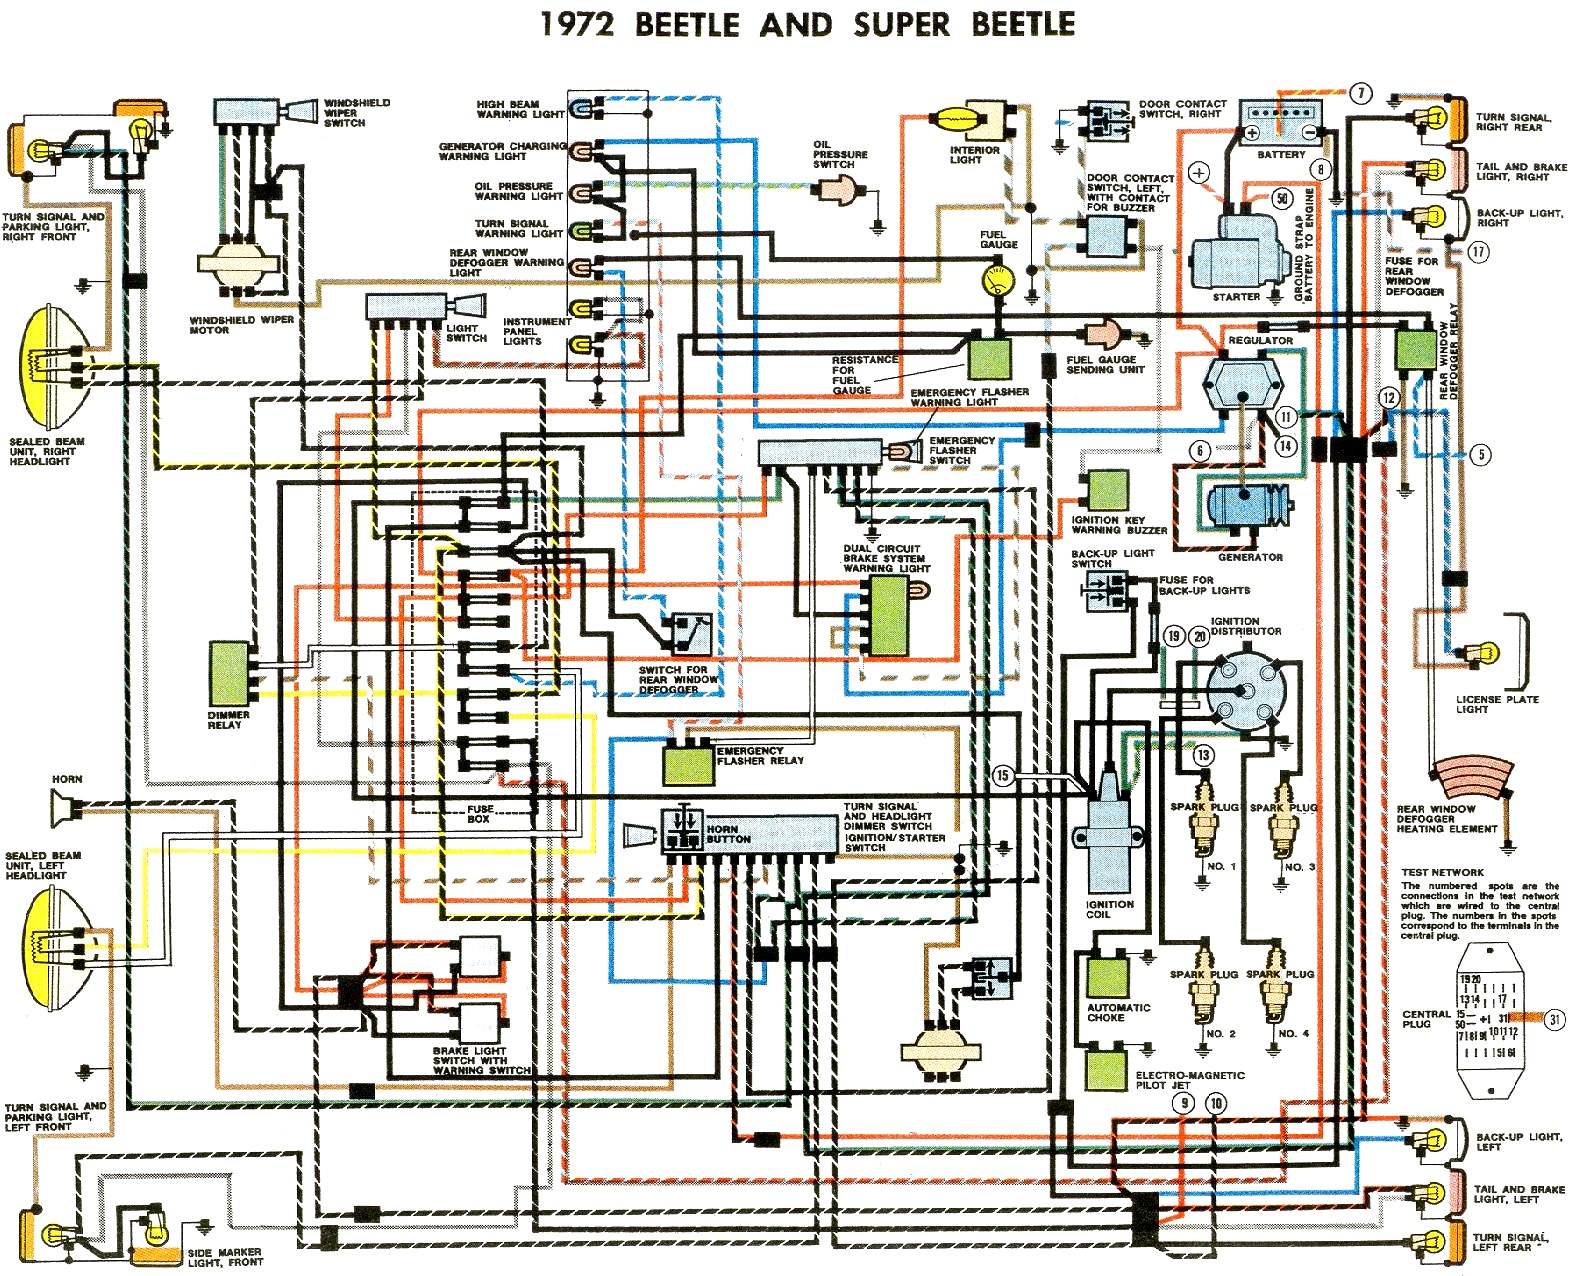 bug_72 2003 vw beetle wiring diagram 2003 nissan maxima wiring diagram new beetle wiring diagram at bayanpartner.co